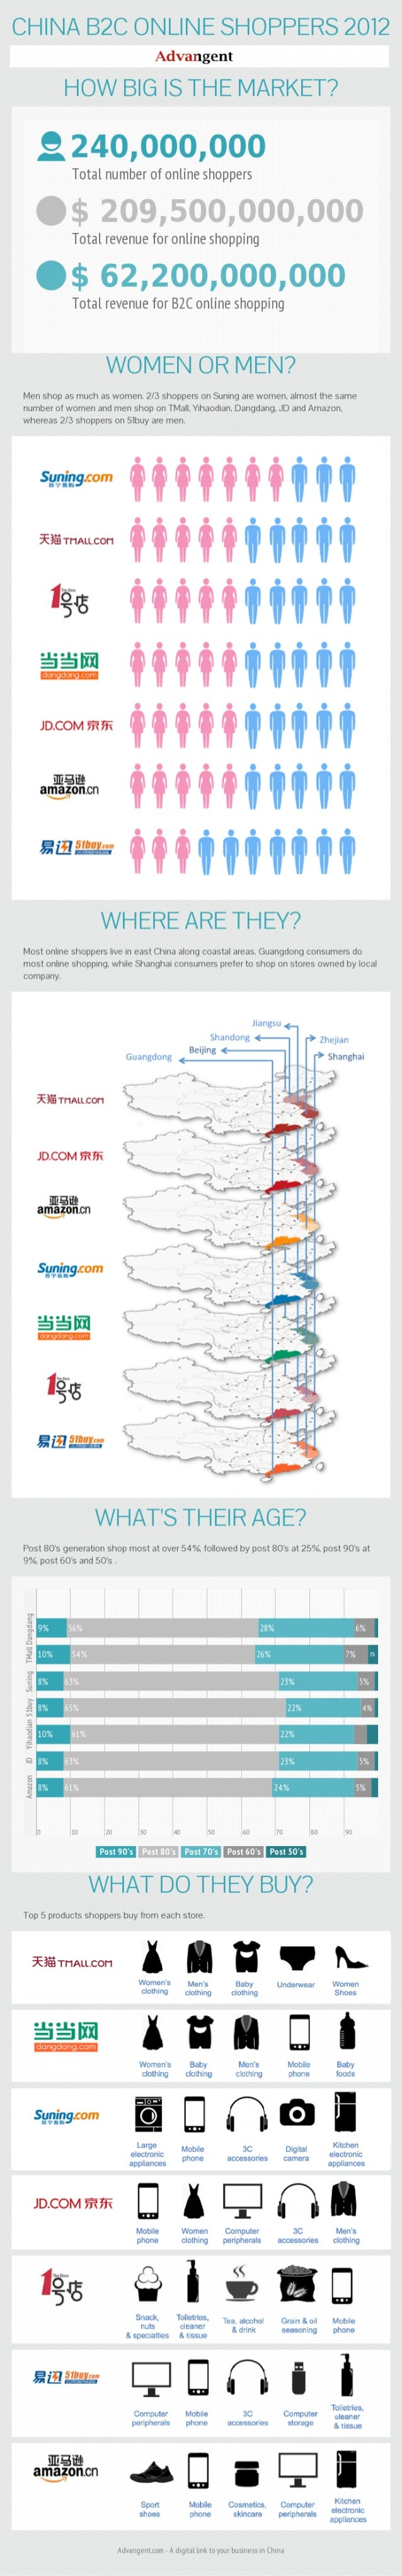 China b2 c online shoppers 2012 new